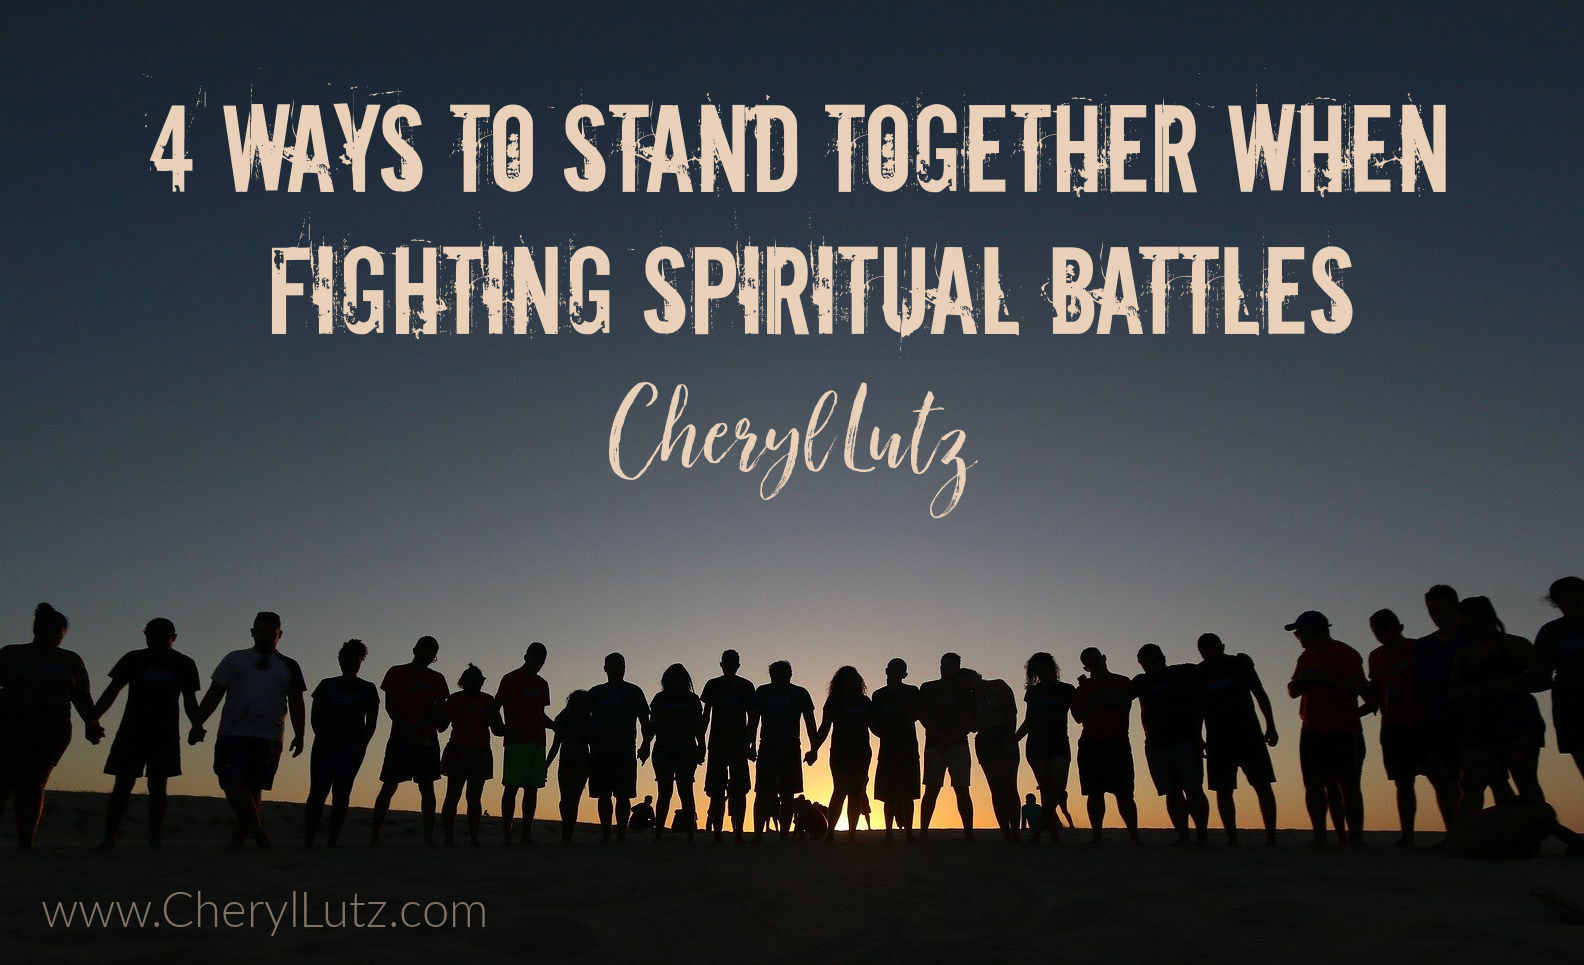 4 Ways To Stand Together When Fighting Spiritual Battles